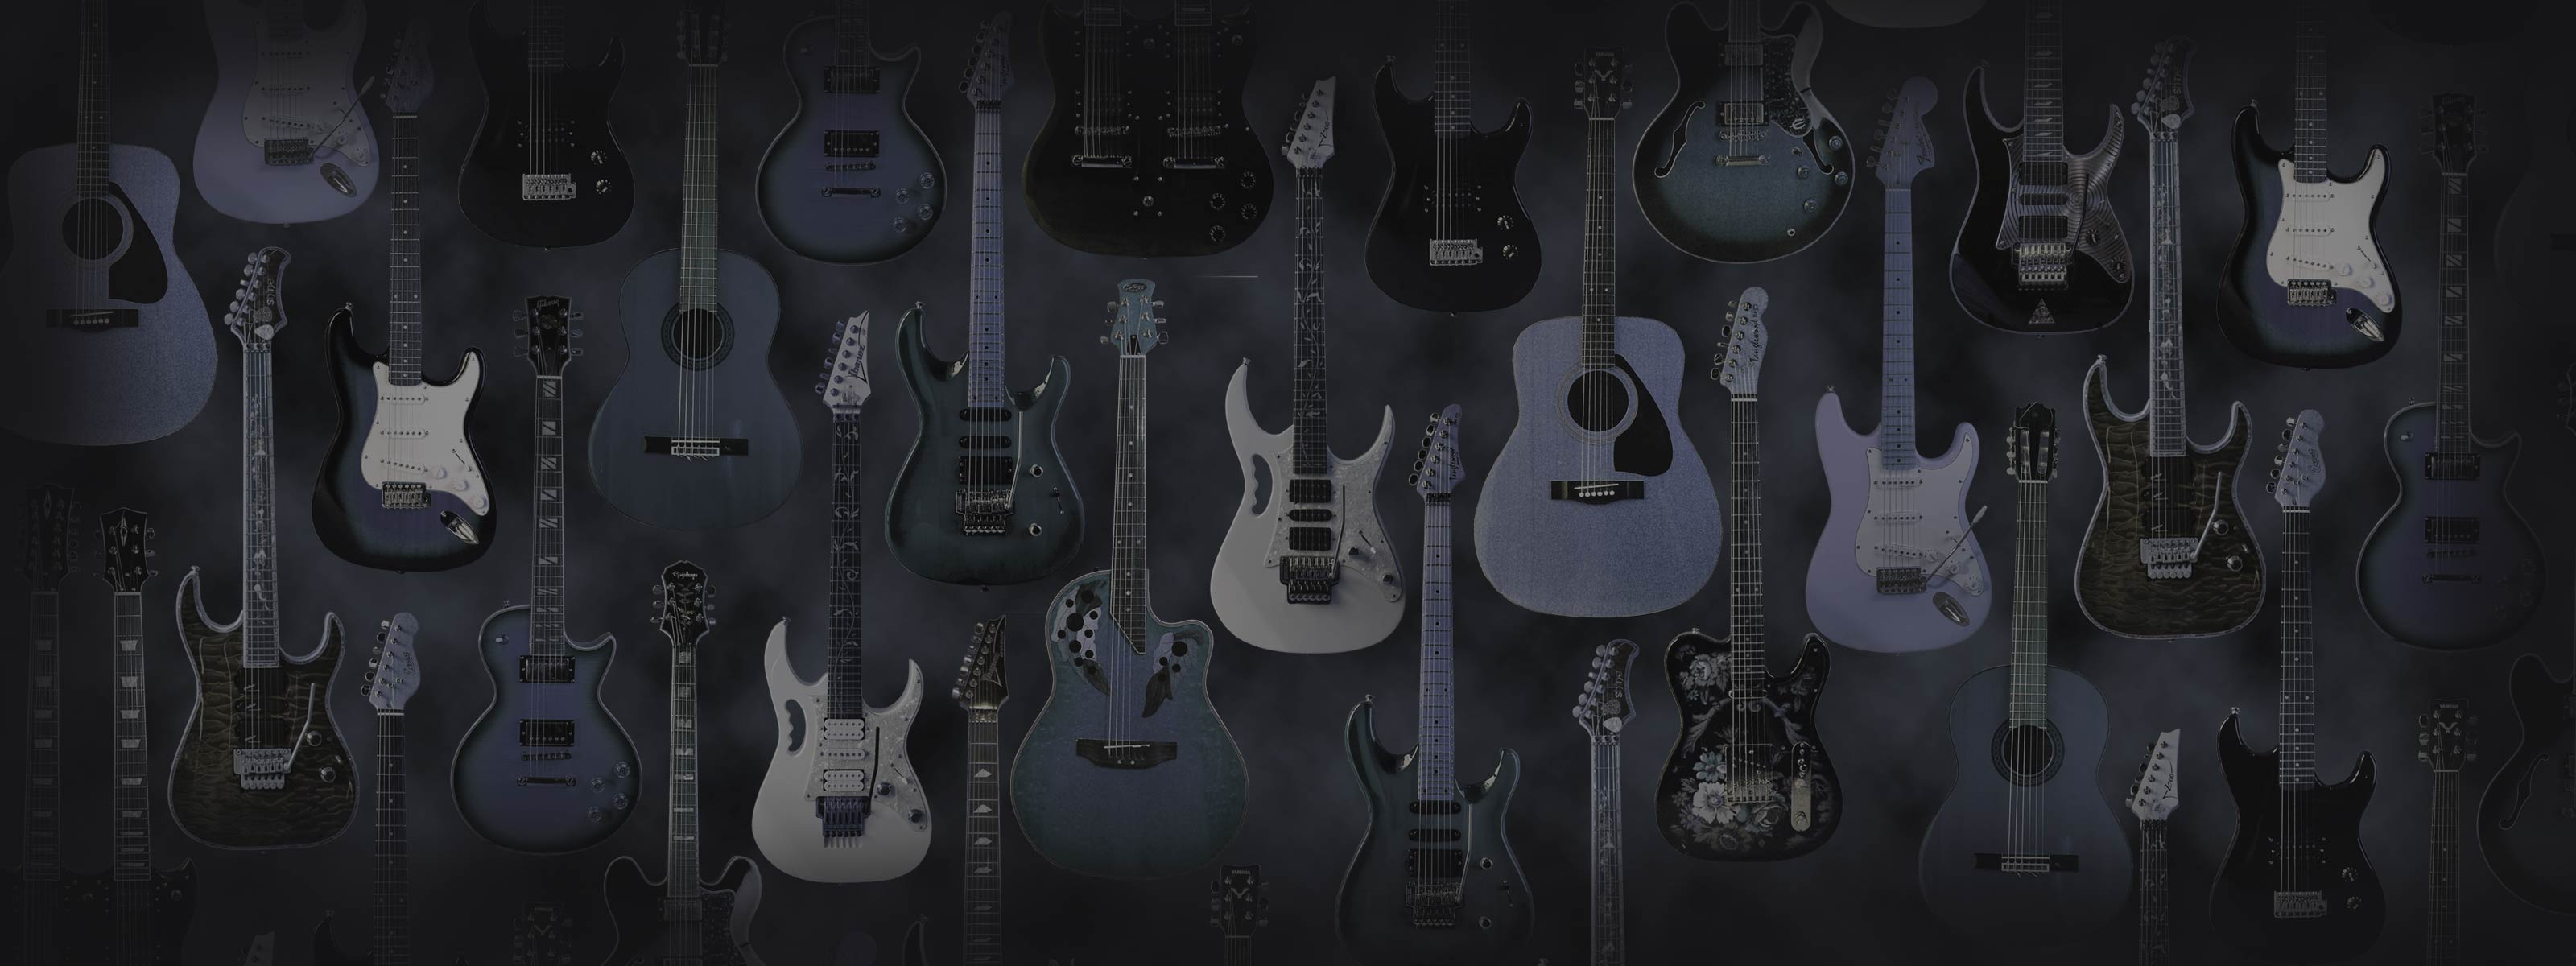 Download Old Guitar Wallpaper Gallery